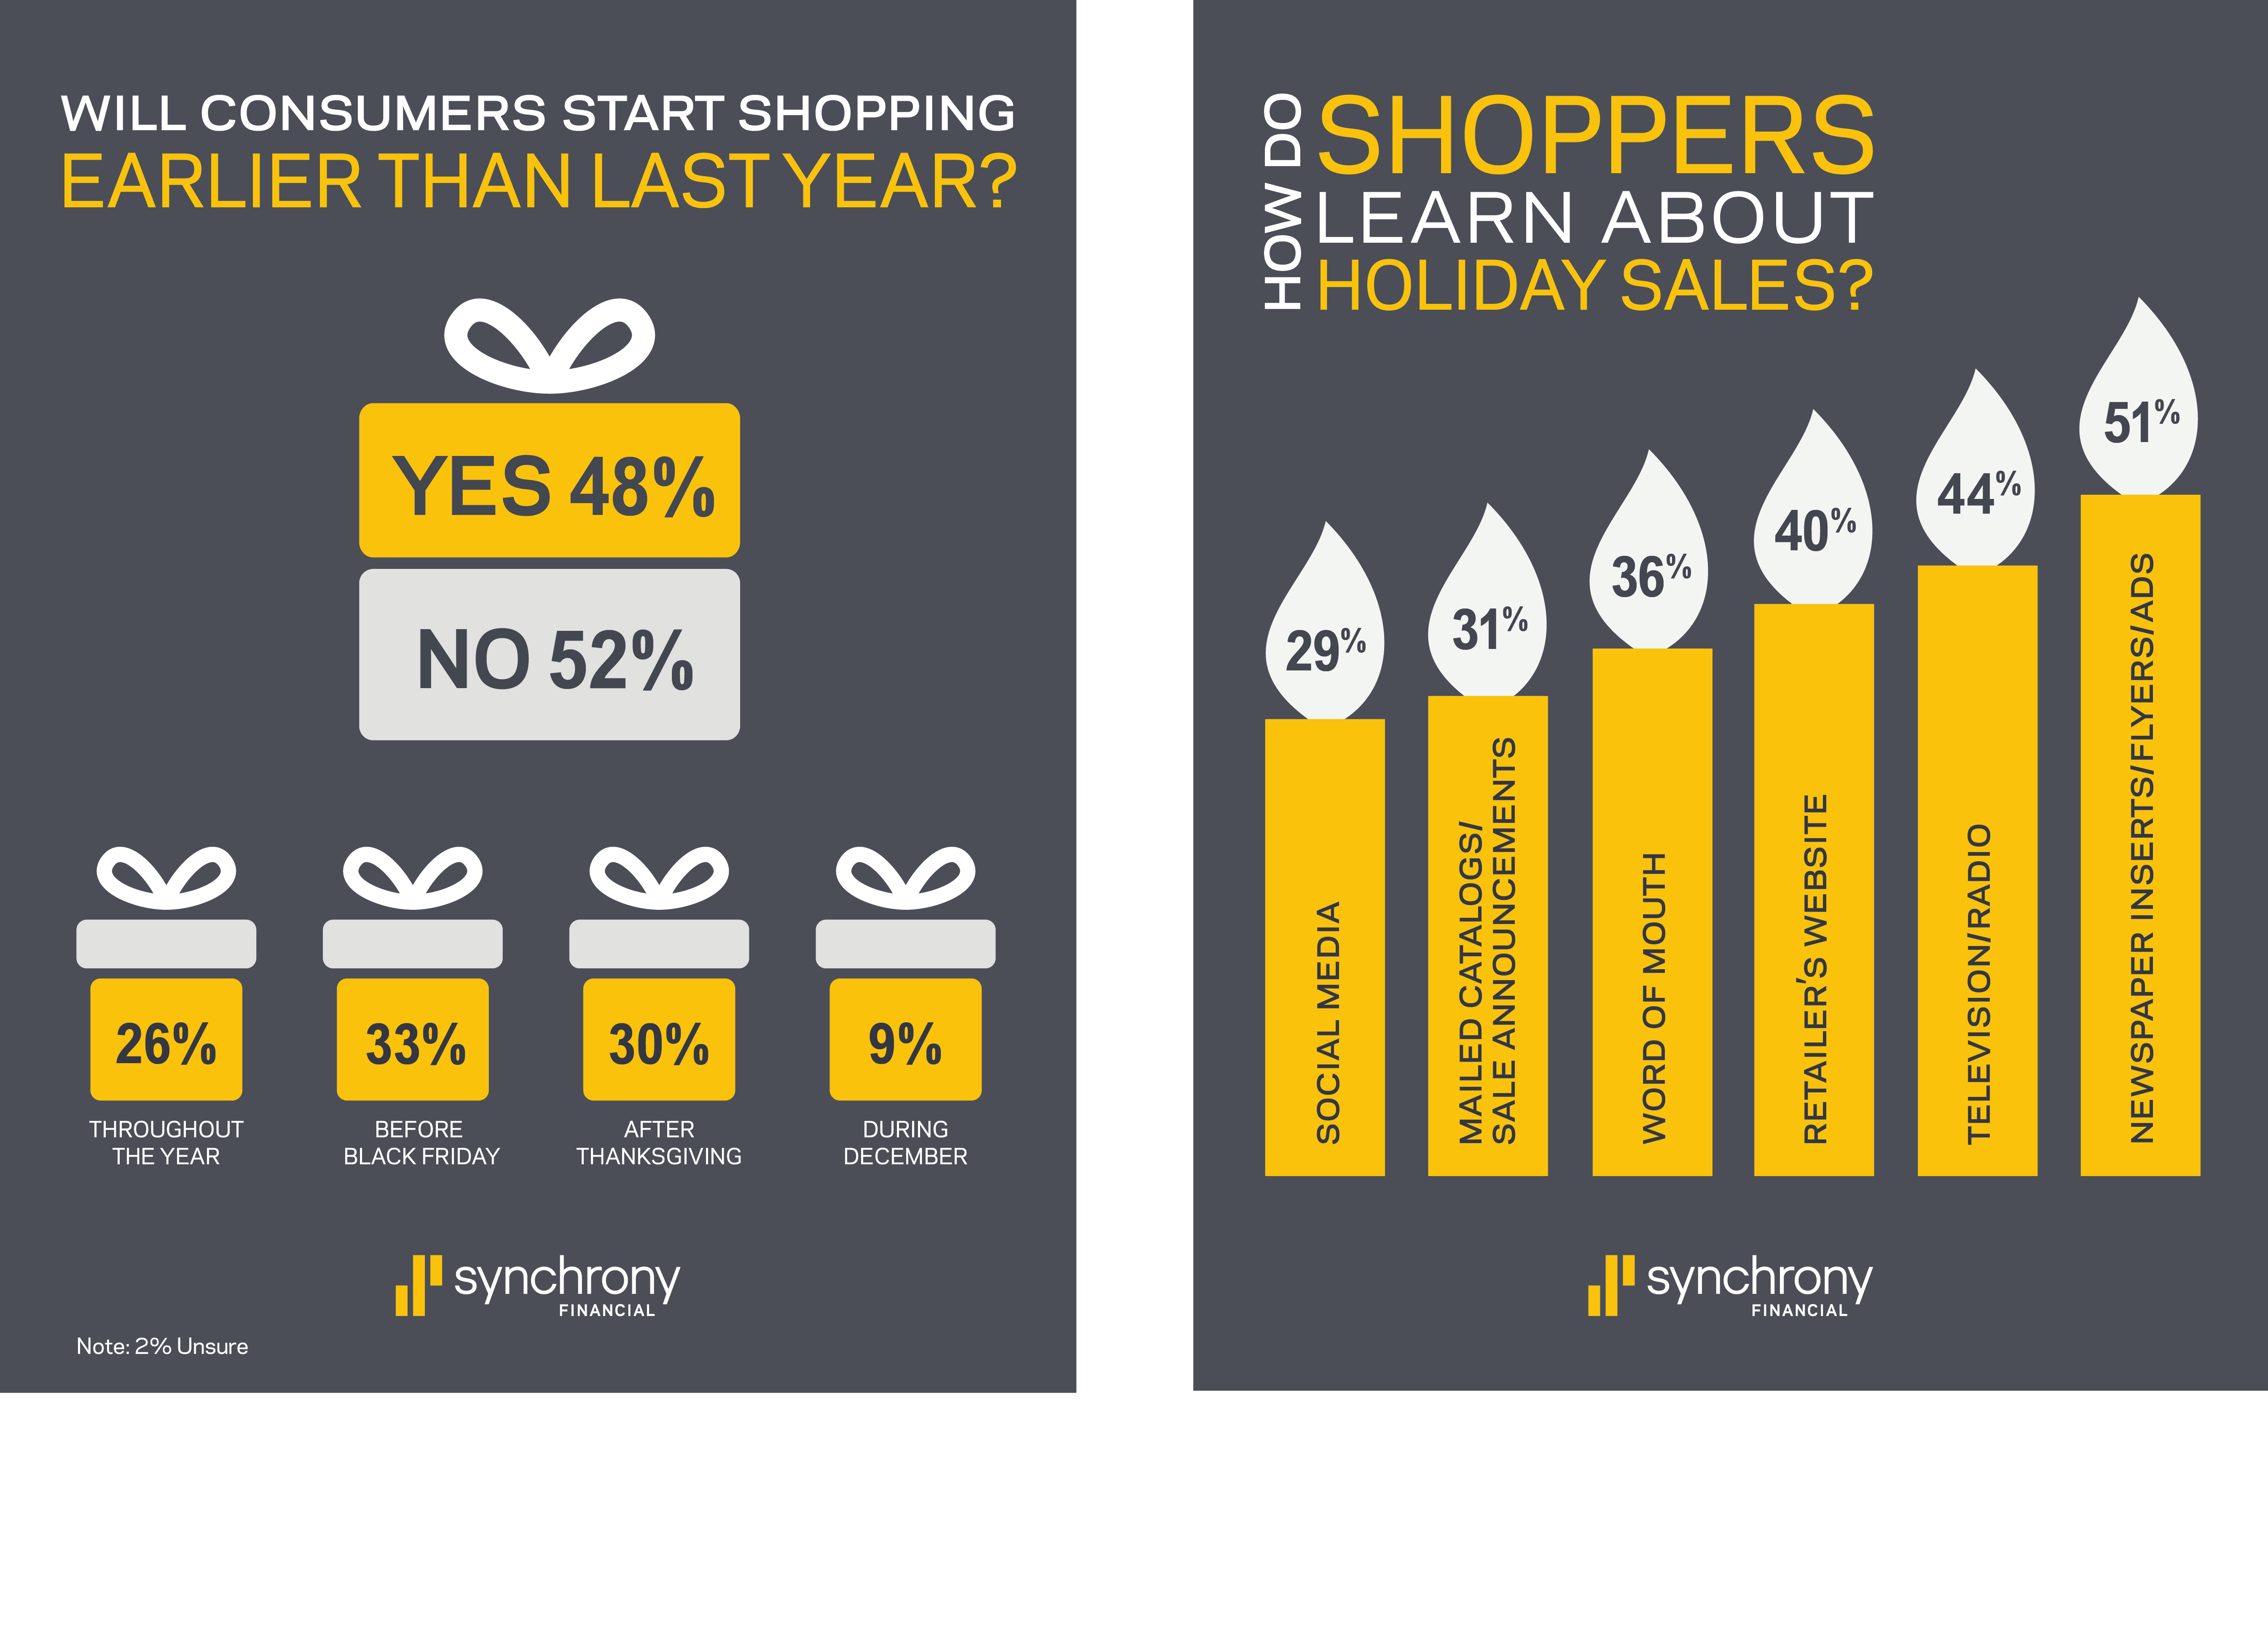 Holiday Retail Sales Driven by Confident Shoppers with